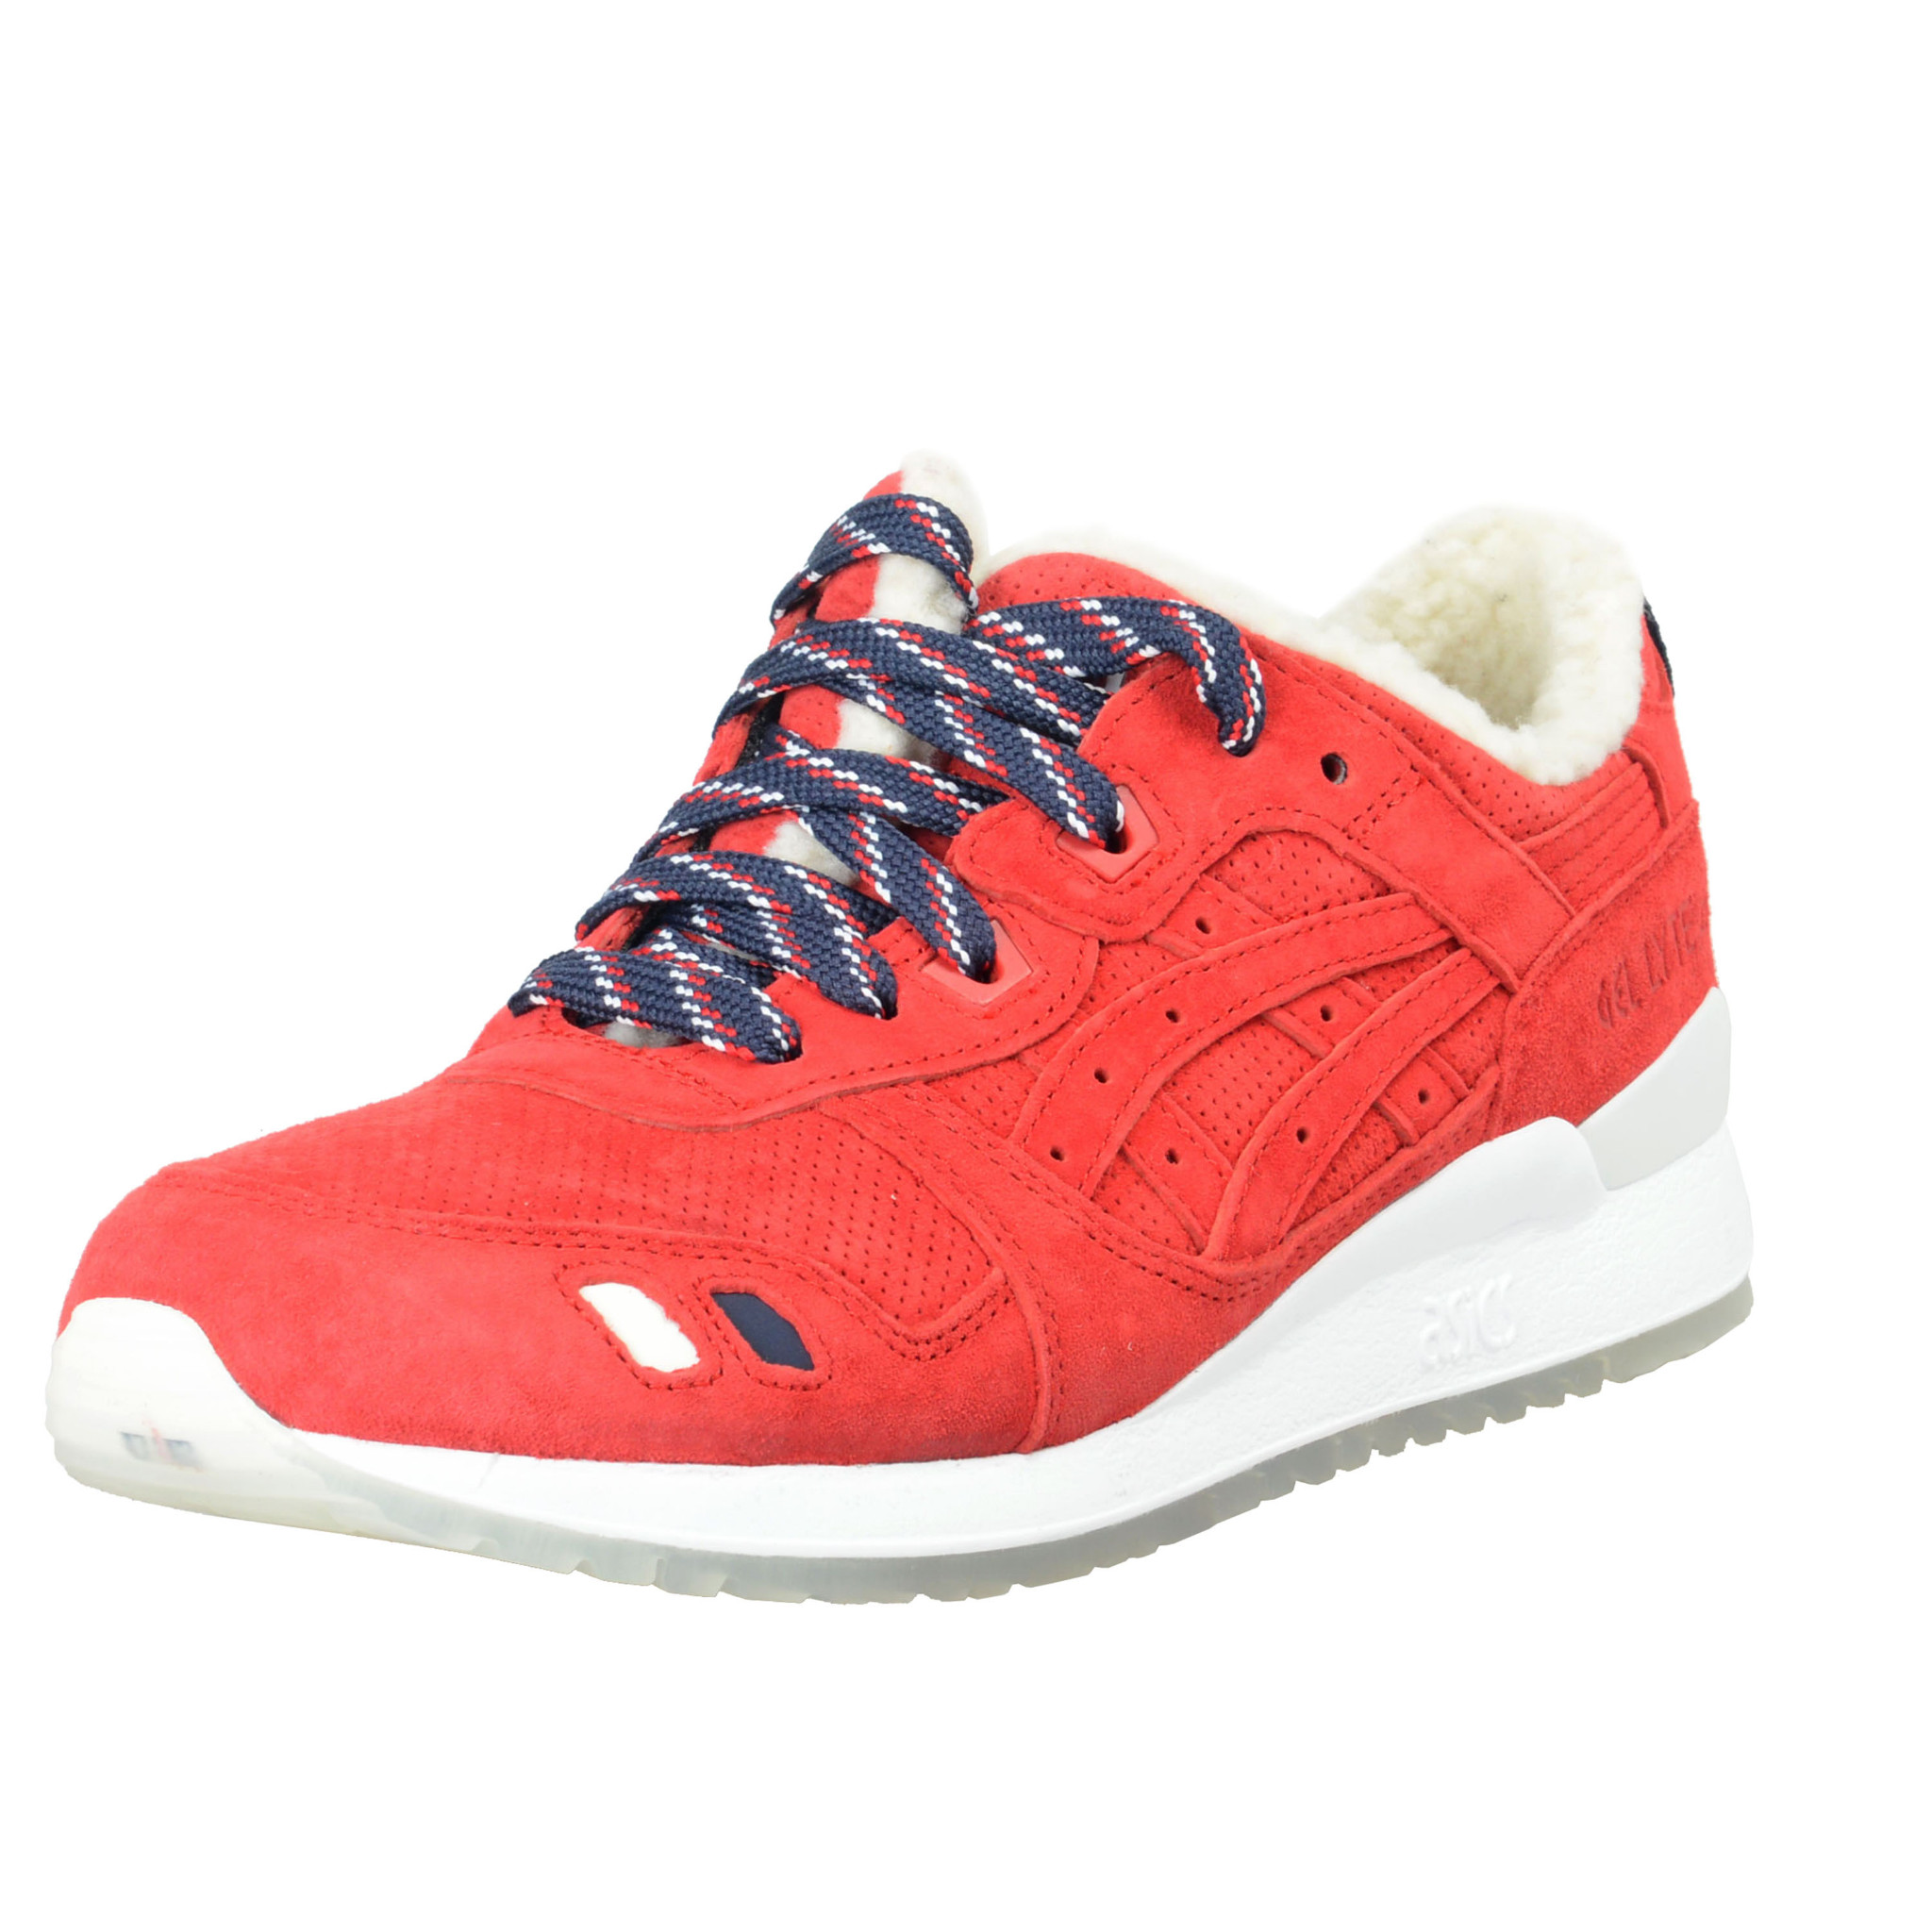 free shipping 09fff 3e725 Details about KithX MonclerX Asics Gel-Lyte III Suede Leather Fashion  Sneakers Shoes 8.5 9.5